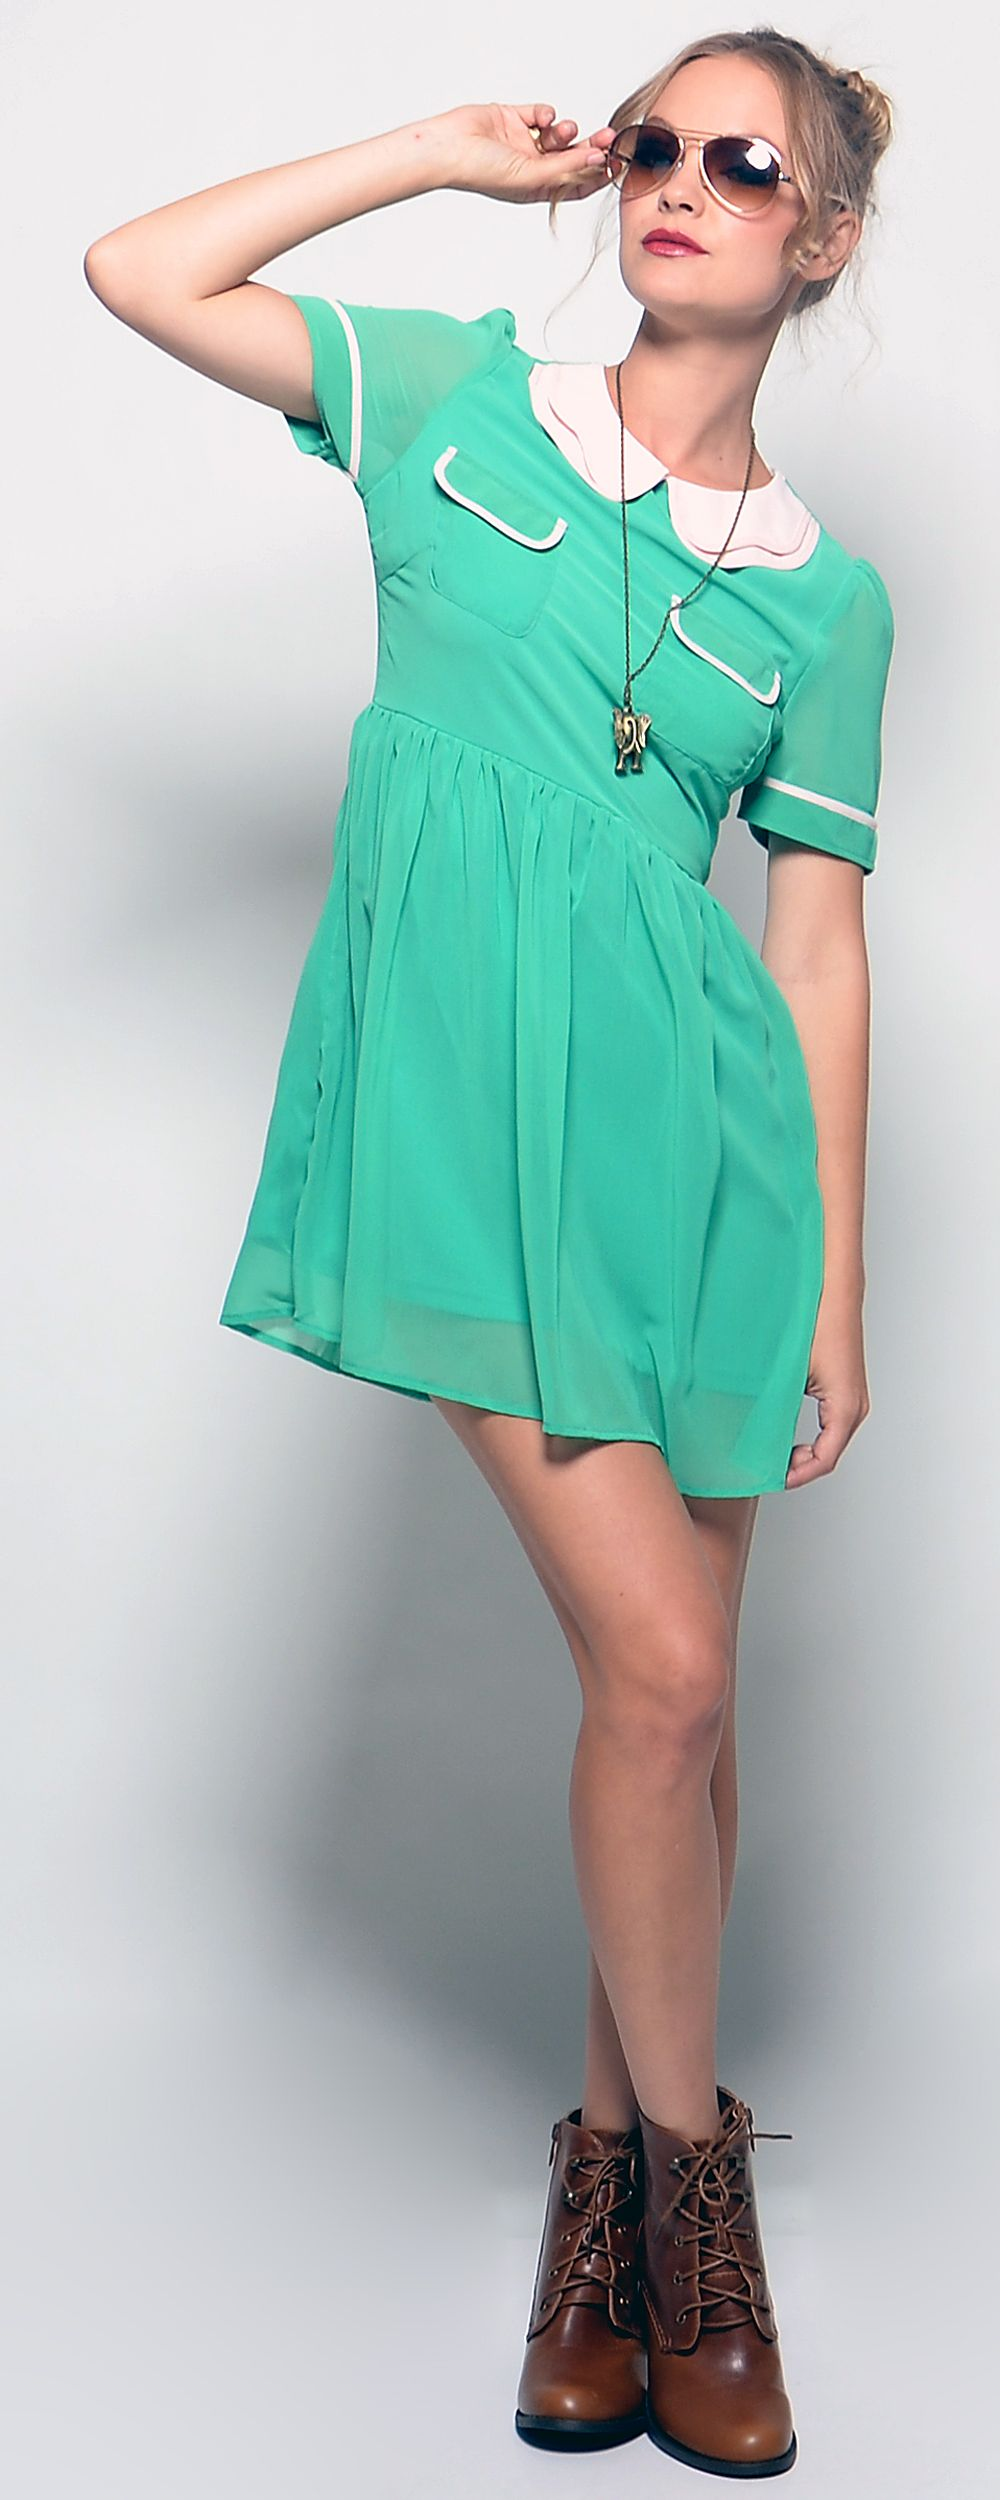 Petunia Pan Green Collared Dress......You can fly!